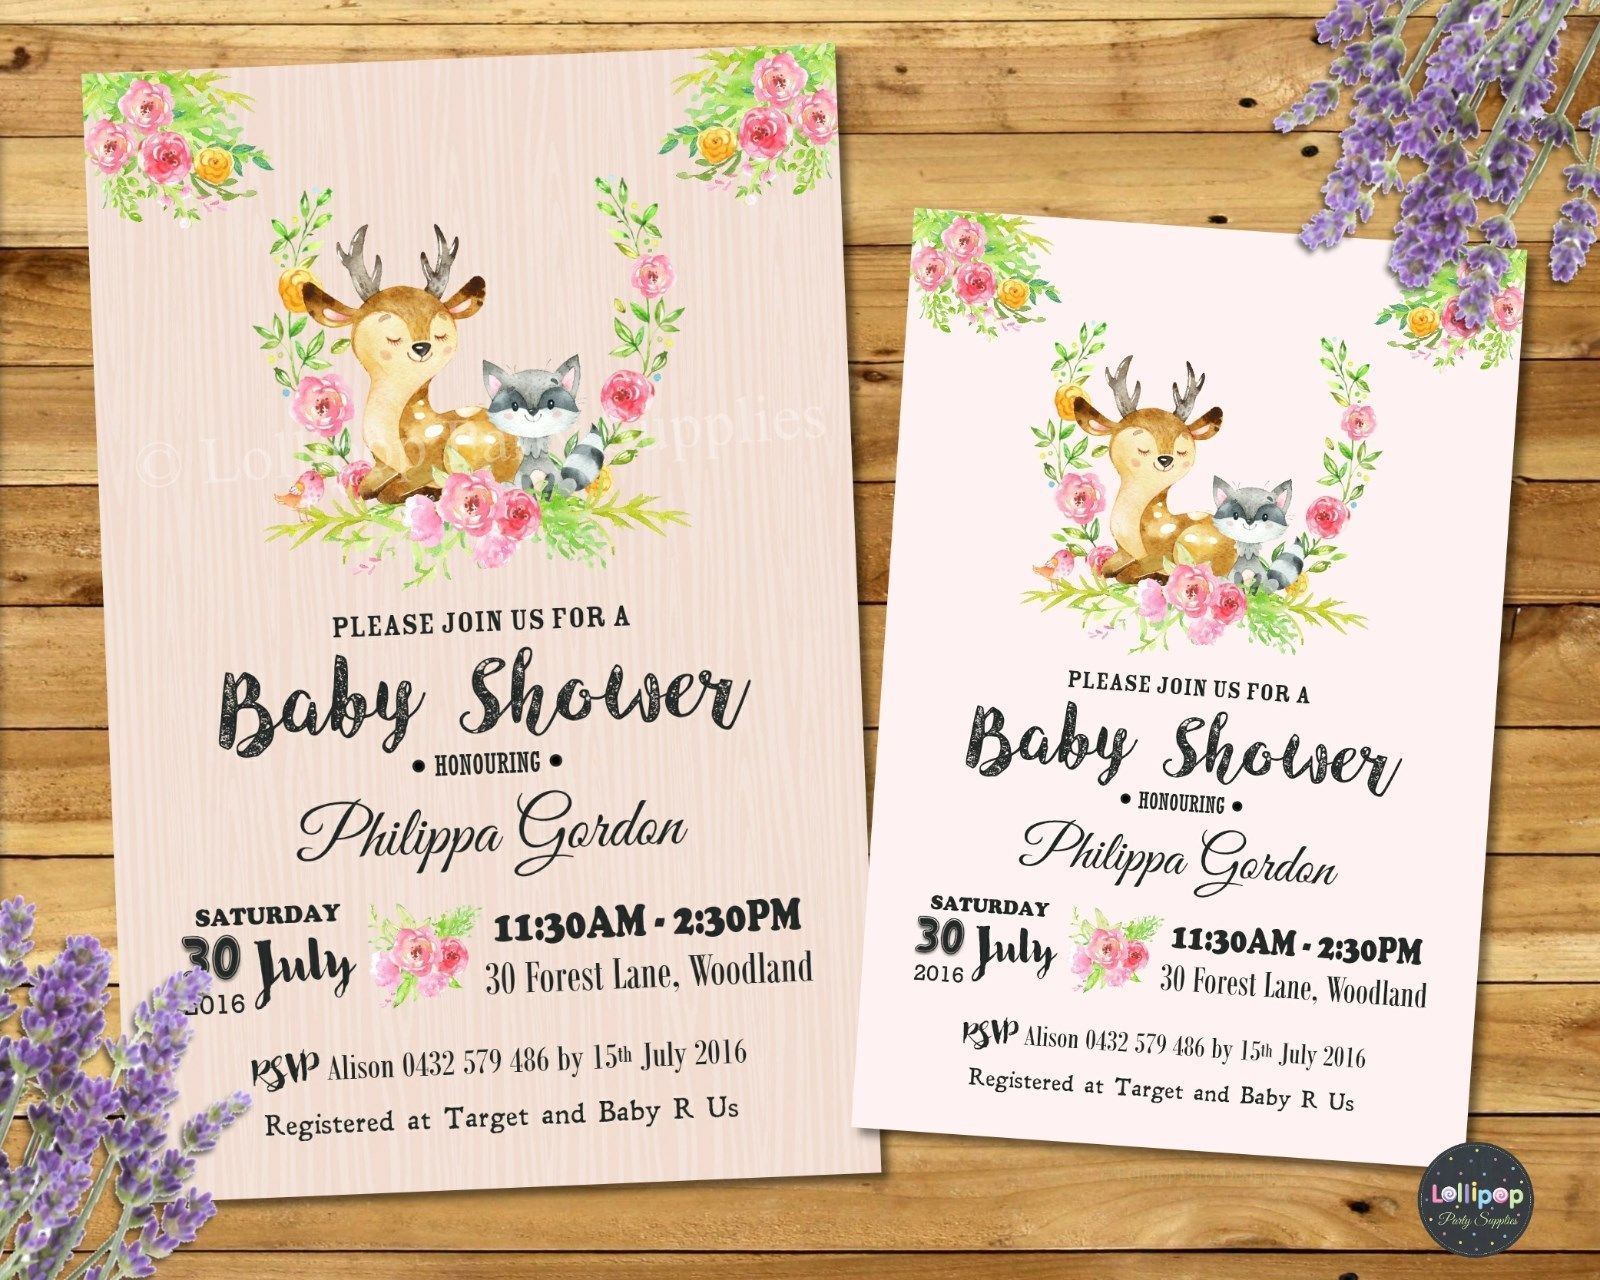 Celebrate The Pending Arrival Of Your Baby Girl With These